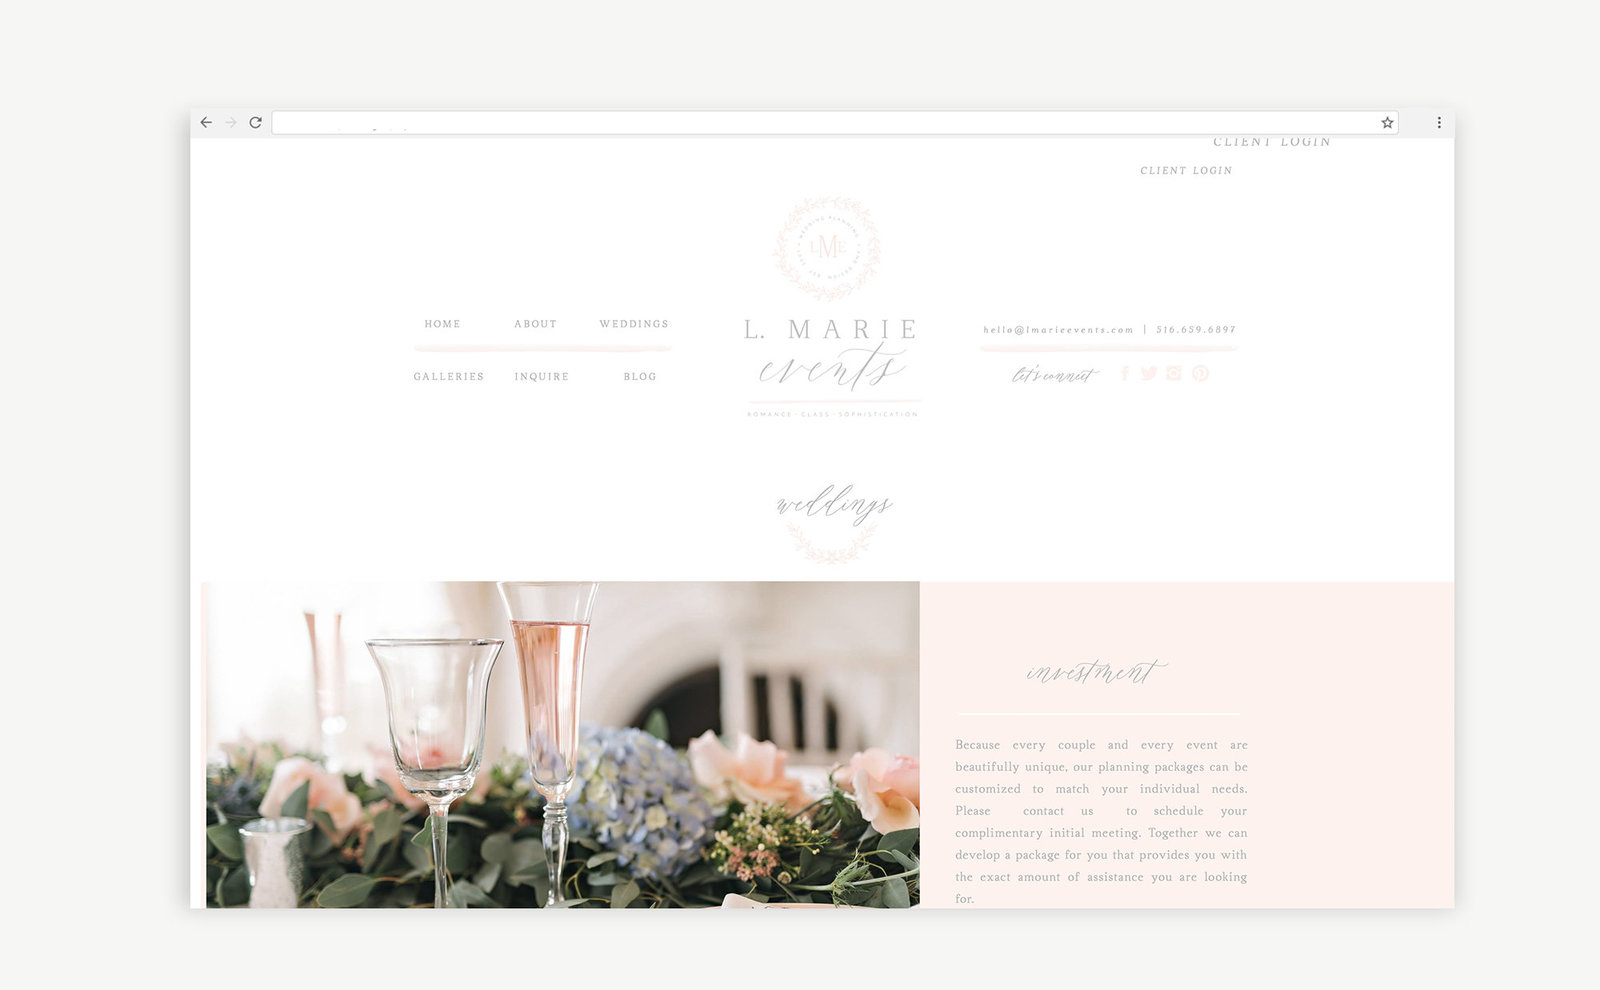 long-island-wedding-planner-website-showit5-03